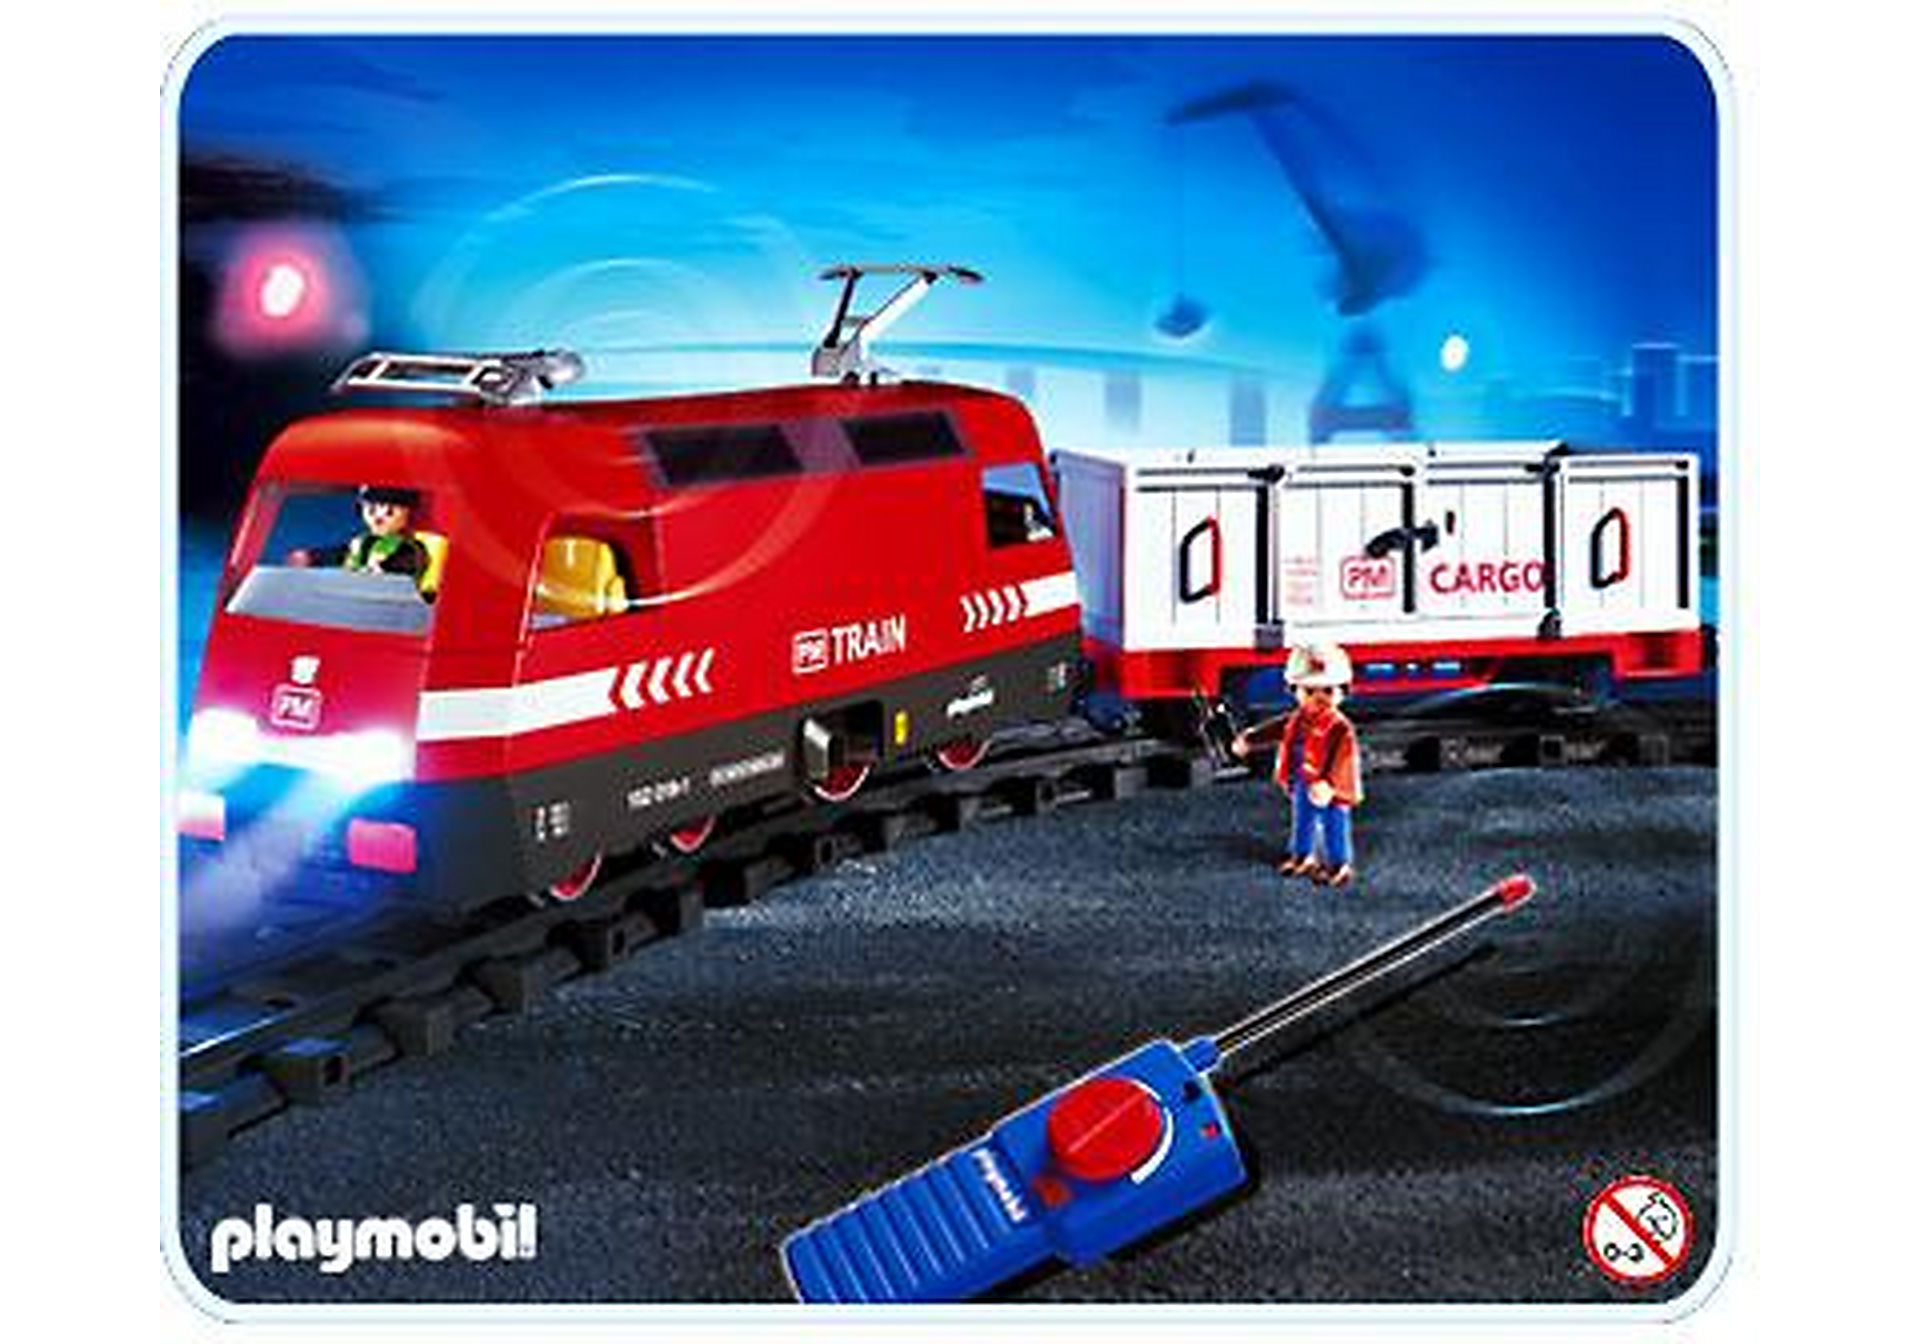 http://media.playmobil.com/i/playmobil/4010-A_product_detail/Train de marchandises RC avec phares